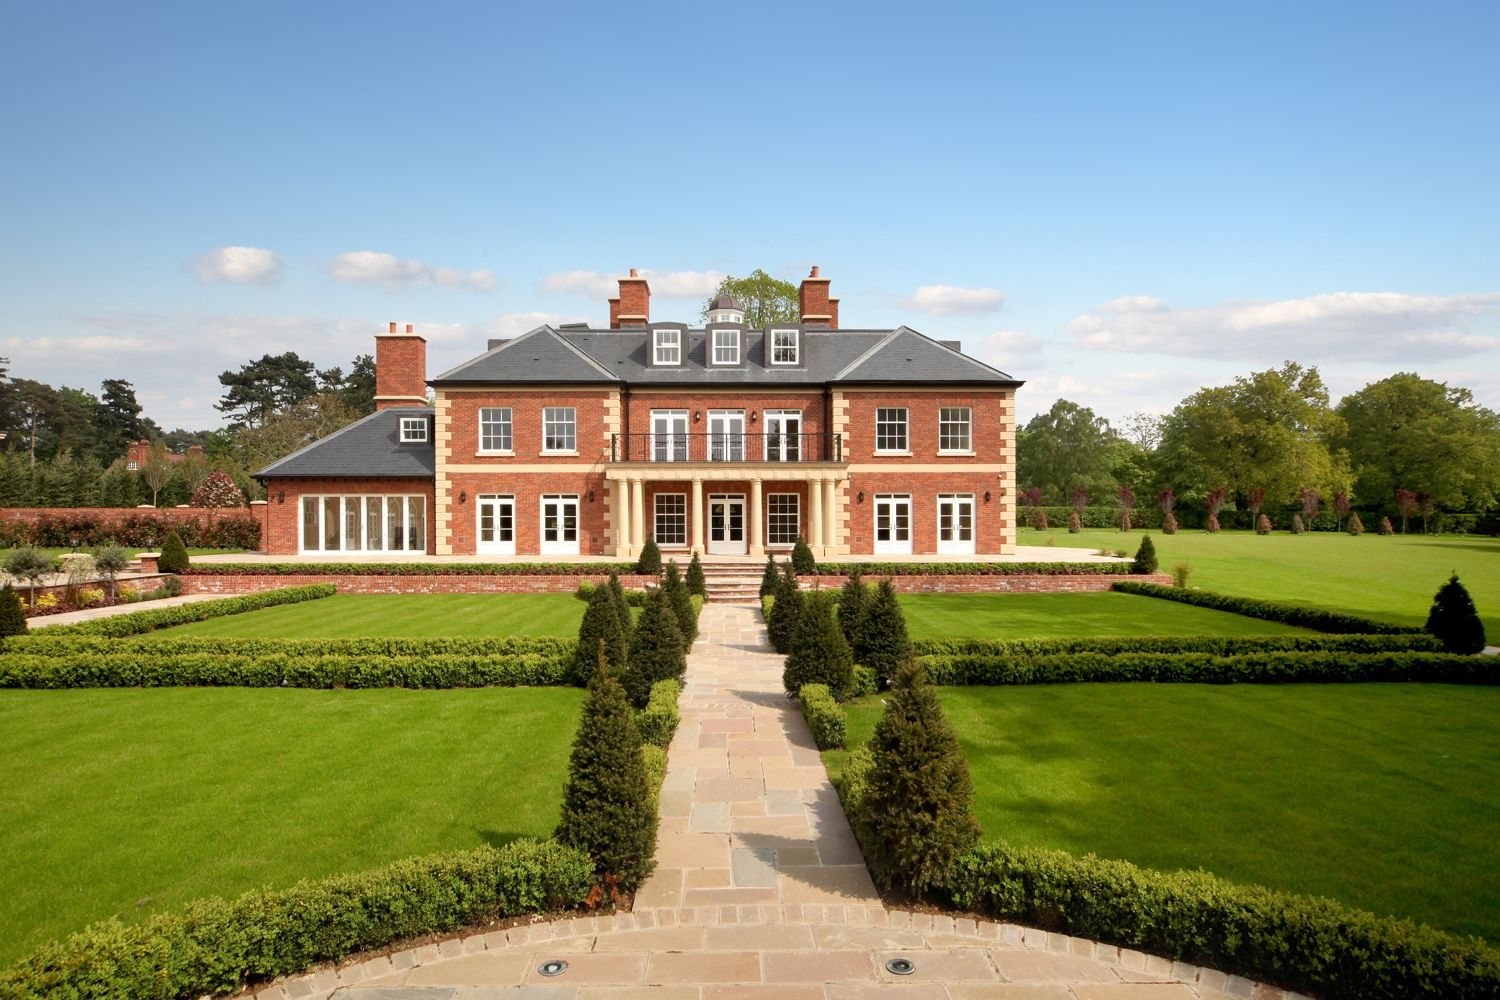 Bishopsheath Is A Magnificent Country House Located In One Of The Most Important Roads On Edge Windsor Great Park